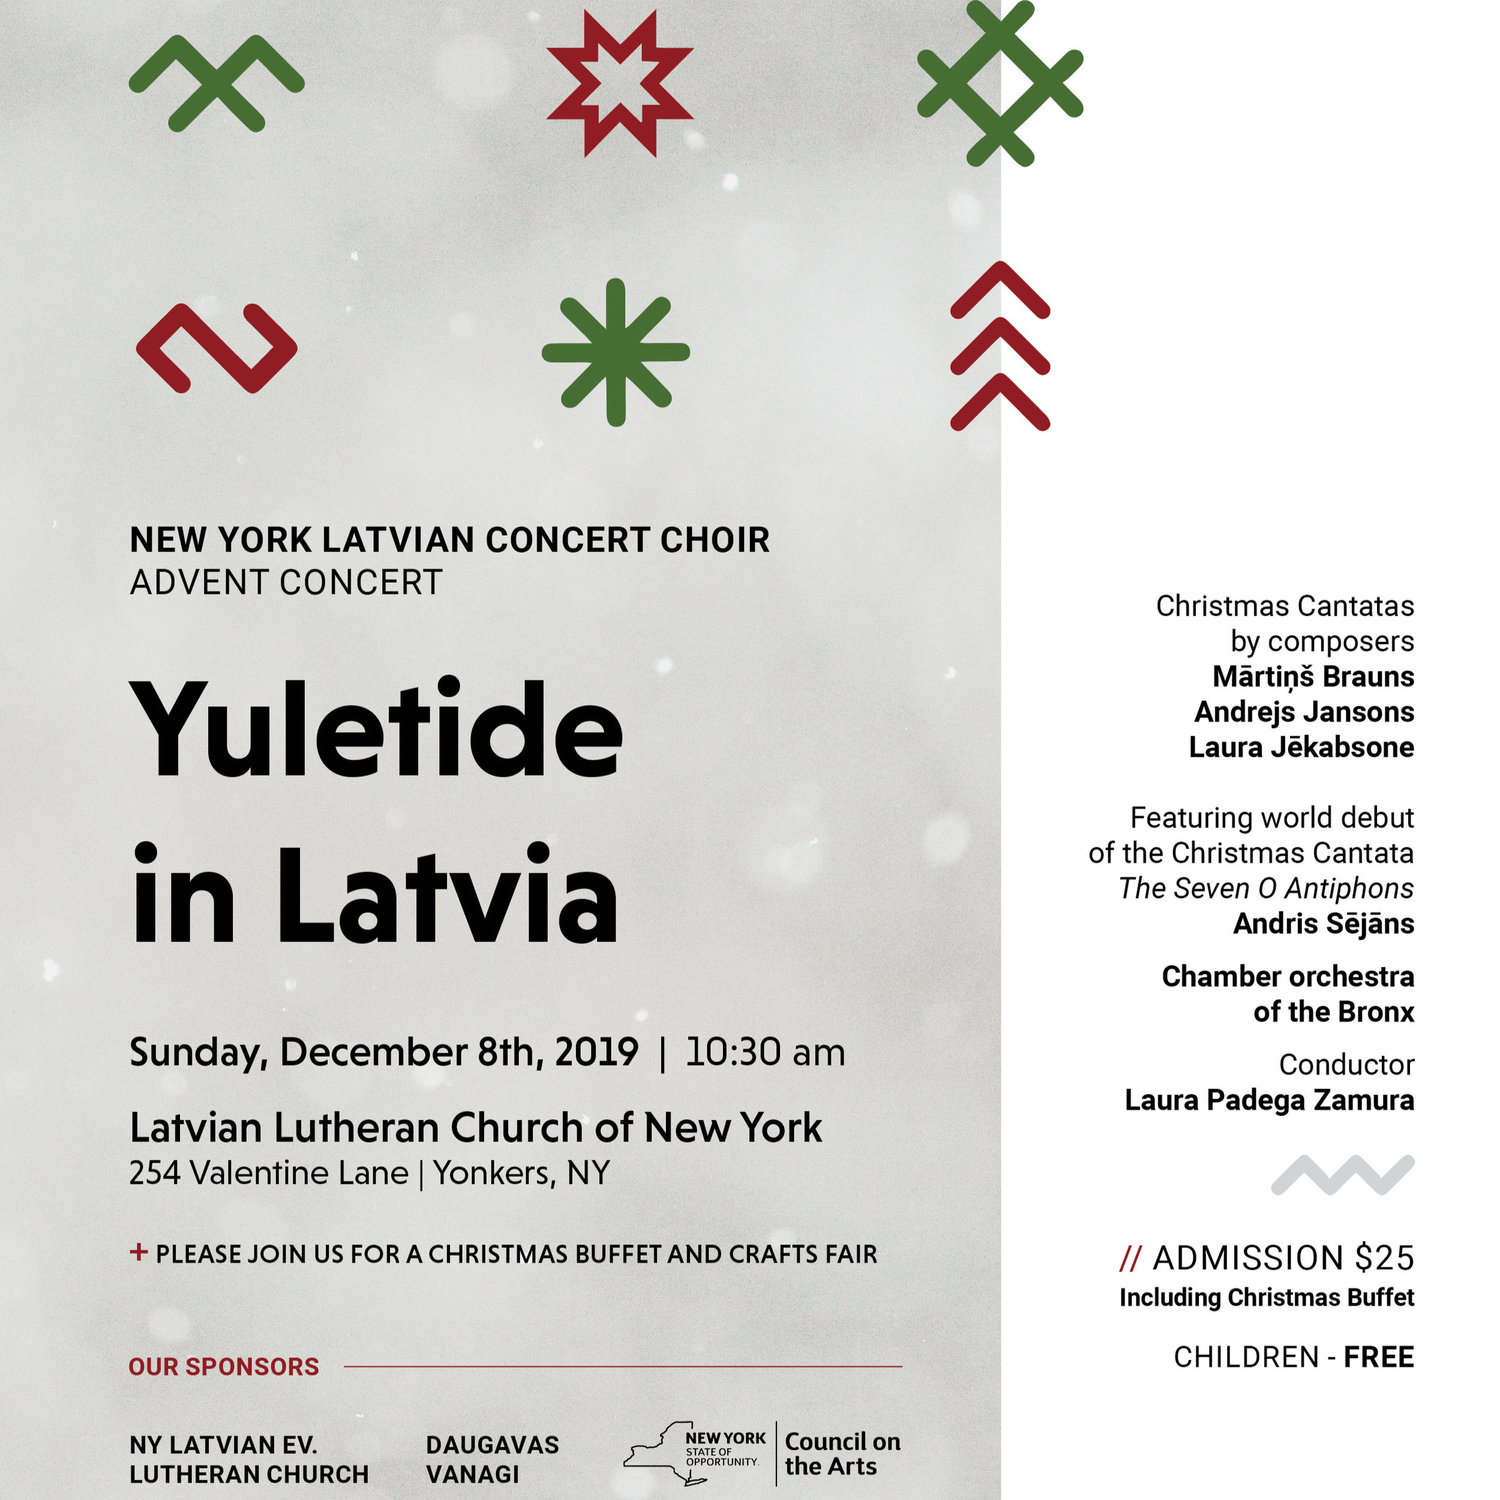 Latvian Lutheran Church Christmas Fair 2020 Yuletide in Latvia / Ziemassvetkis Laika Vejos   December 8, 2019